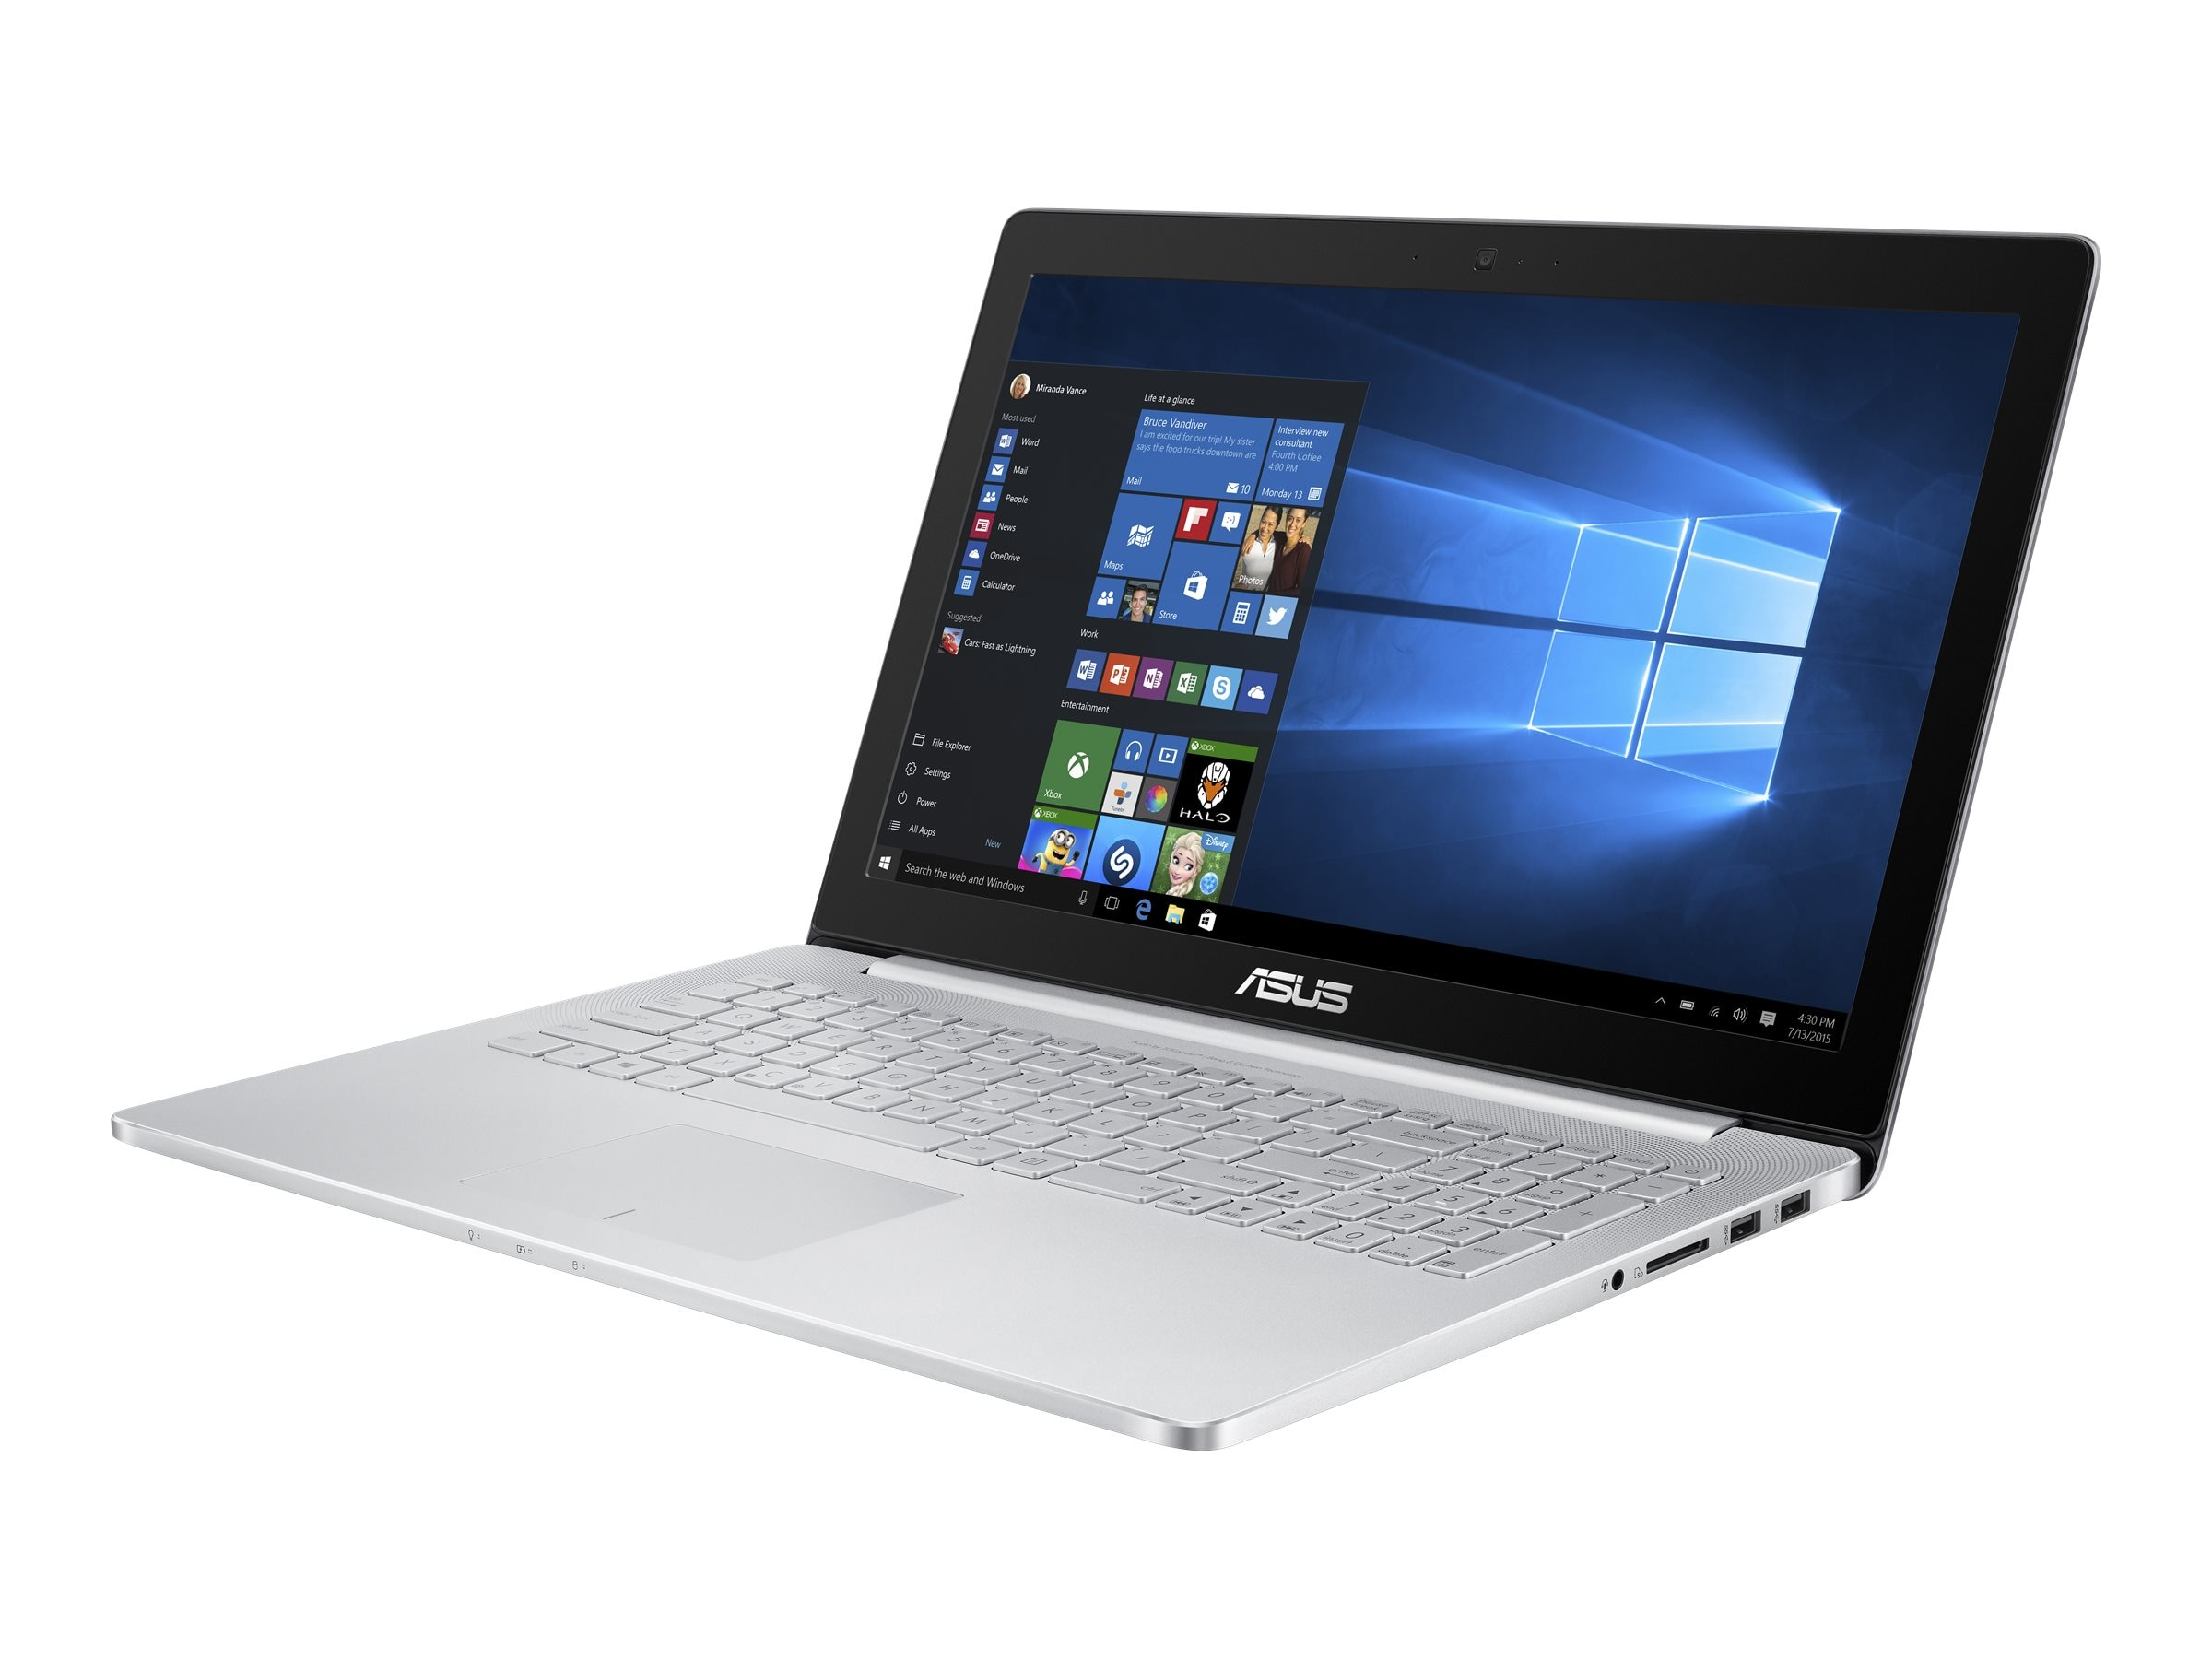 Asus Zenbook Pro UX501VW-XS74TCM 15.6 Notebook PC